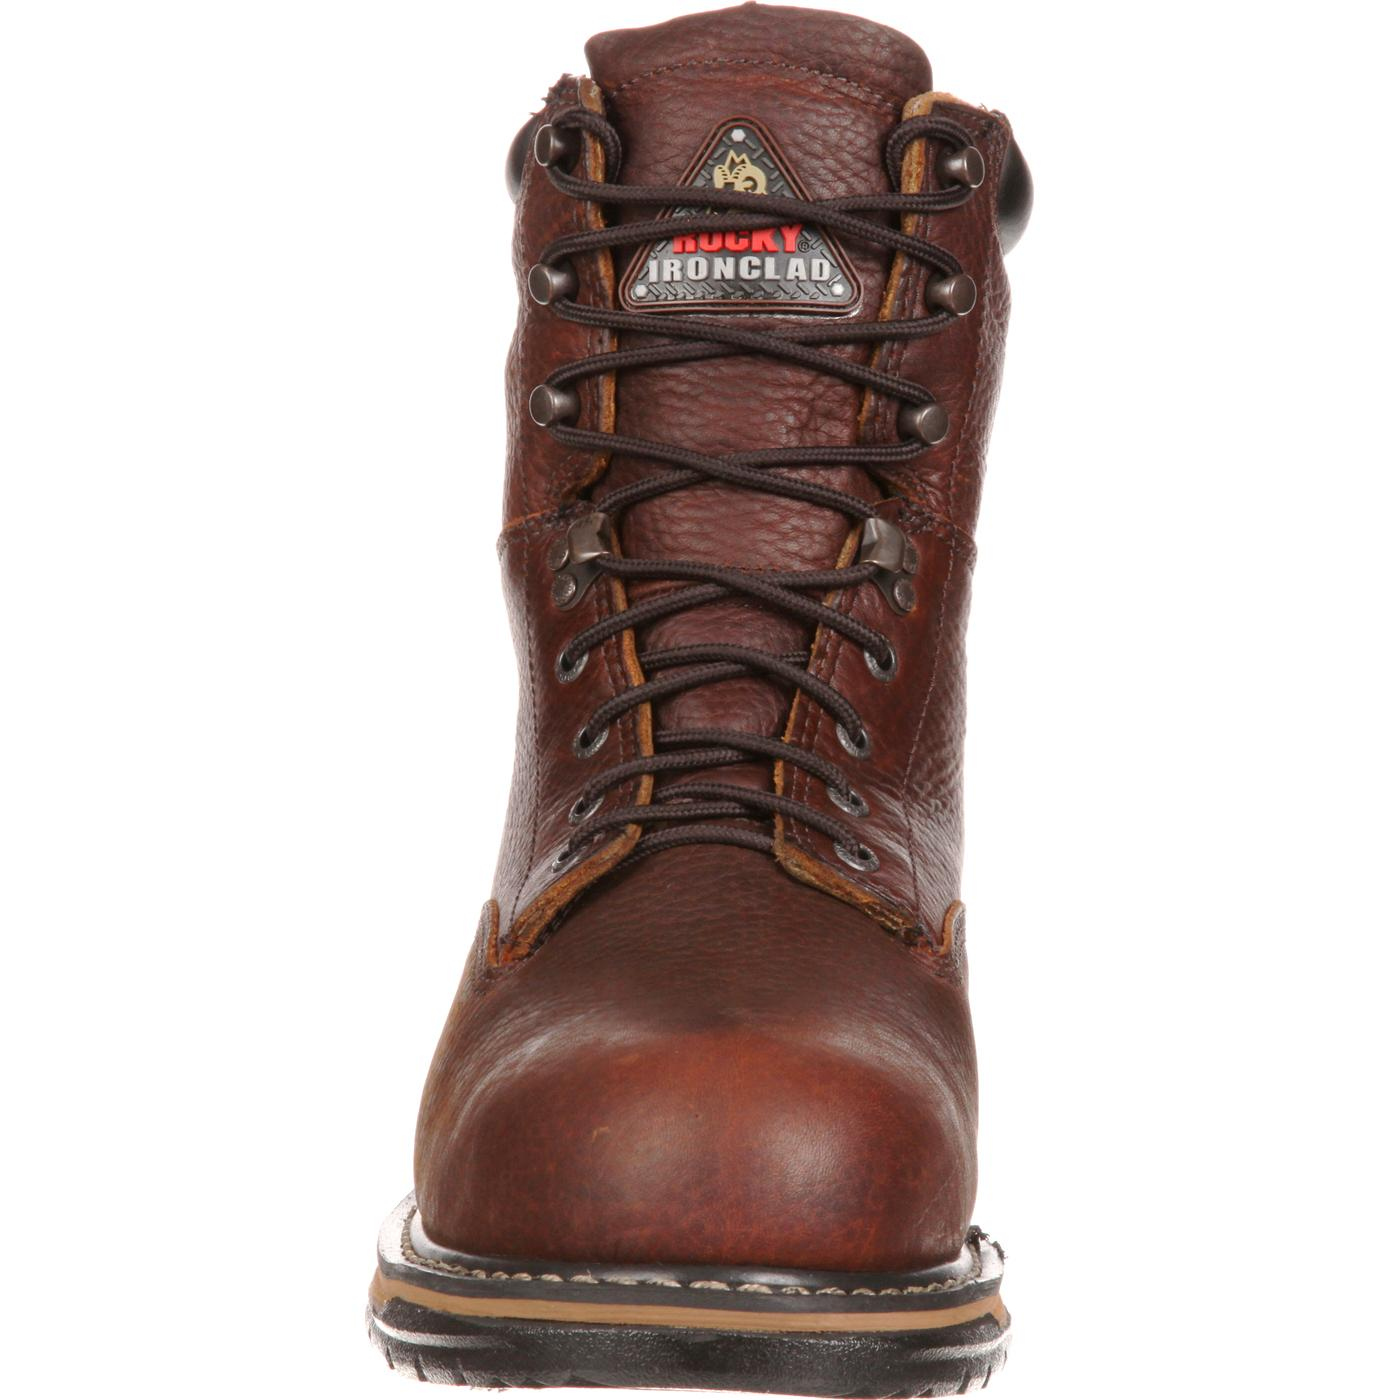 Rocky IronClad Insulated Waterproof Work Boot, FQ0005694